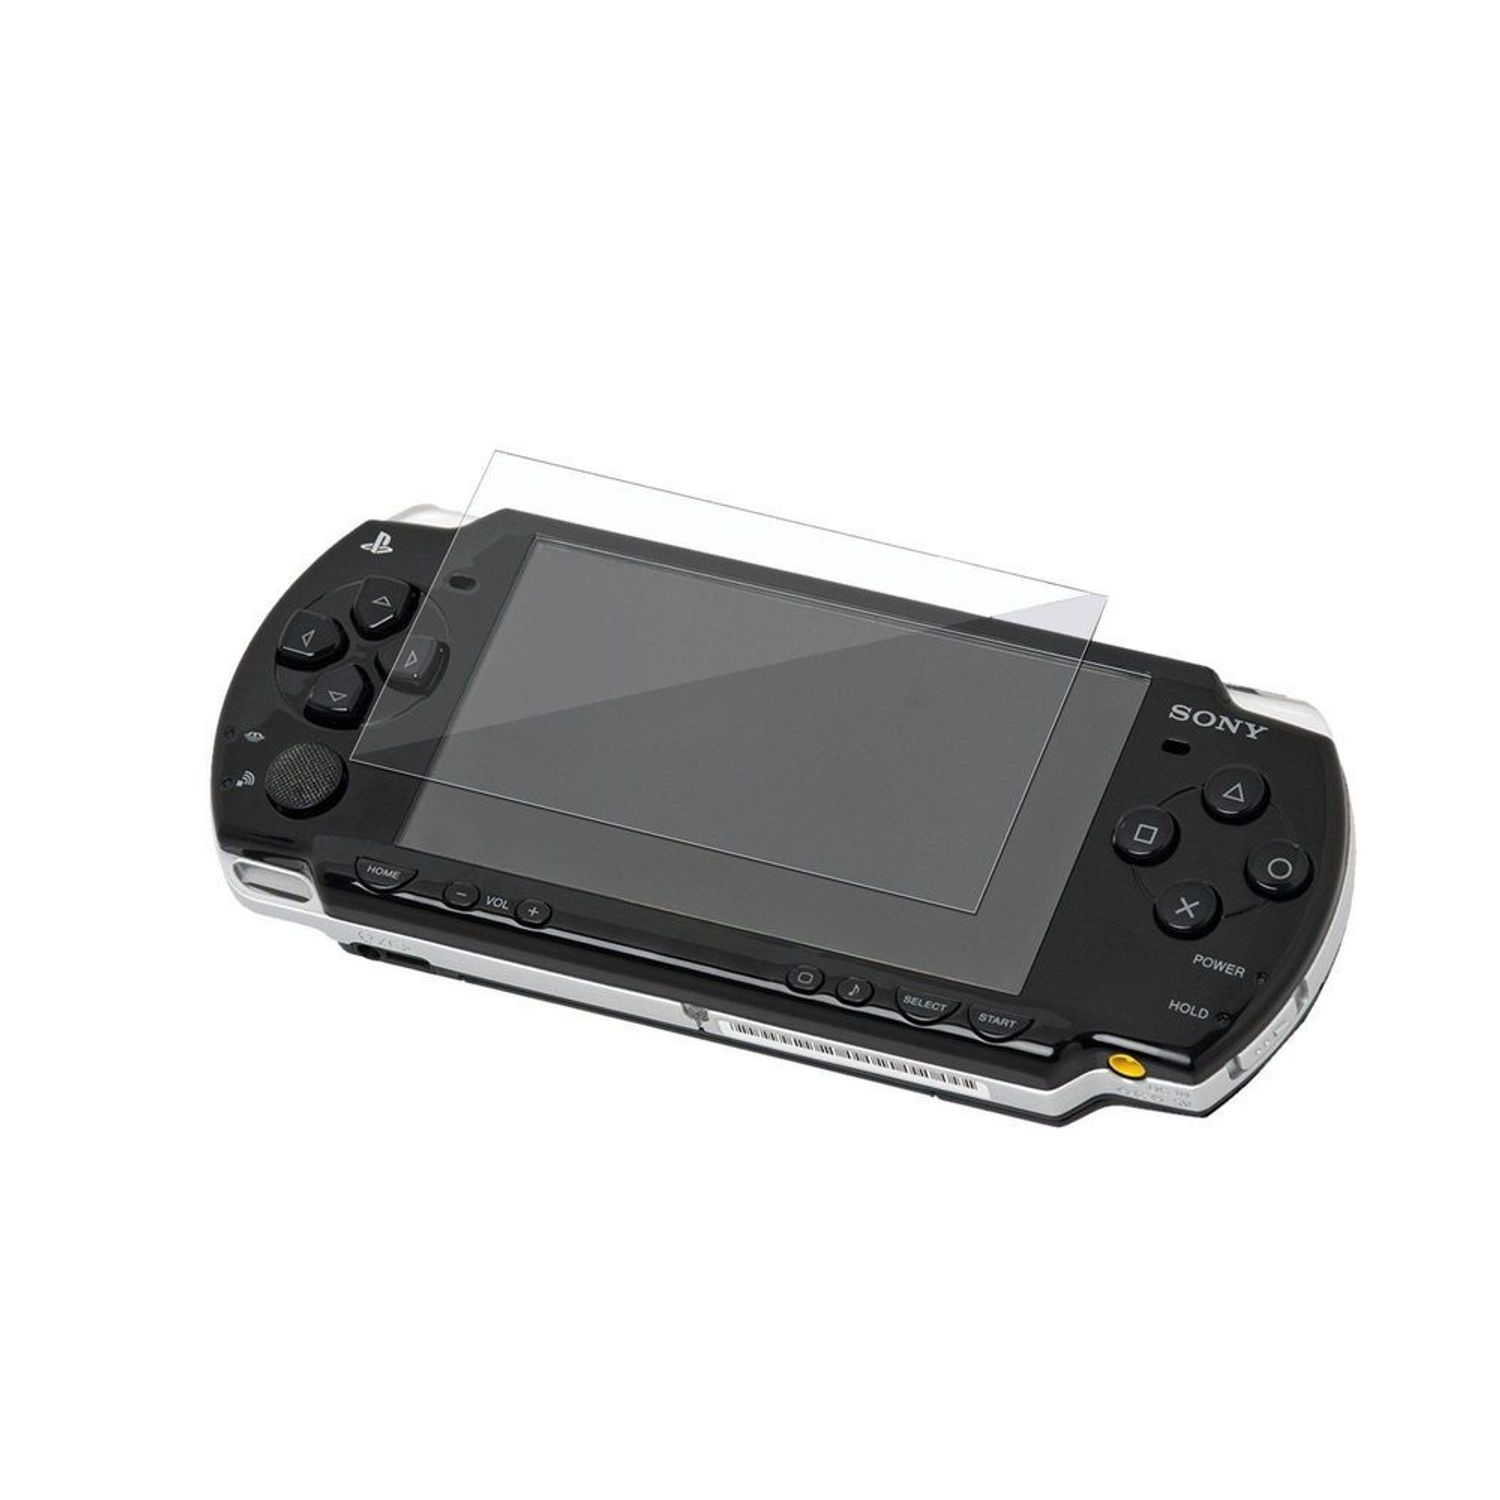 Cloth PSP 3000 PSP Slim /& Lite Importer520 3 Screen Protector Compatible with SONY PSP Sony PSP 2000